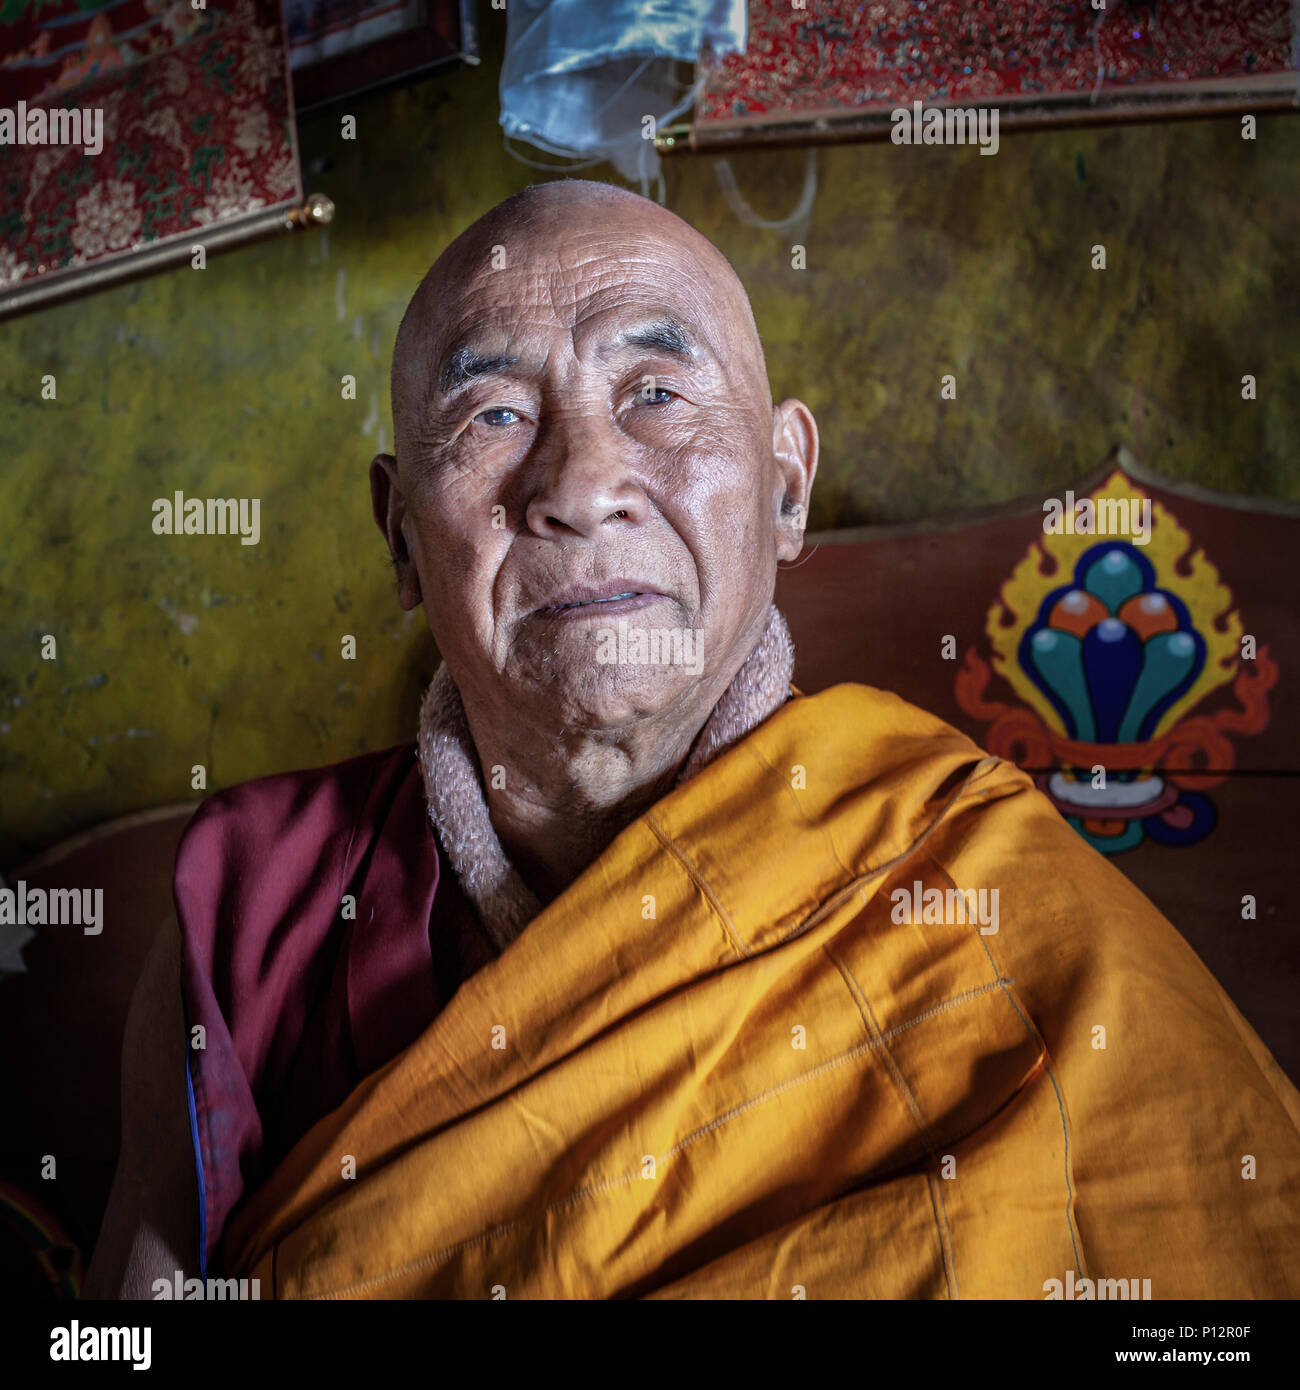 Elderly monk from Galden Namgey Lhatse Monastery, Tawang, Arunachal Pradesh, India - Stock Image